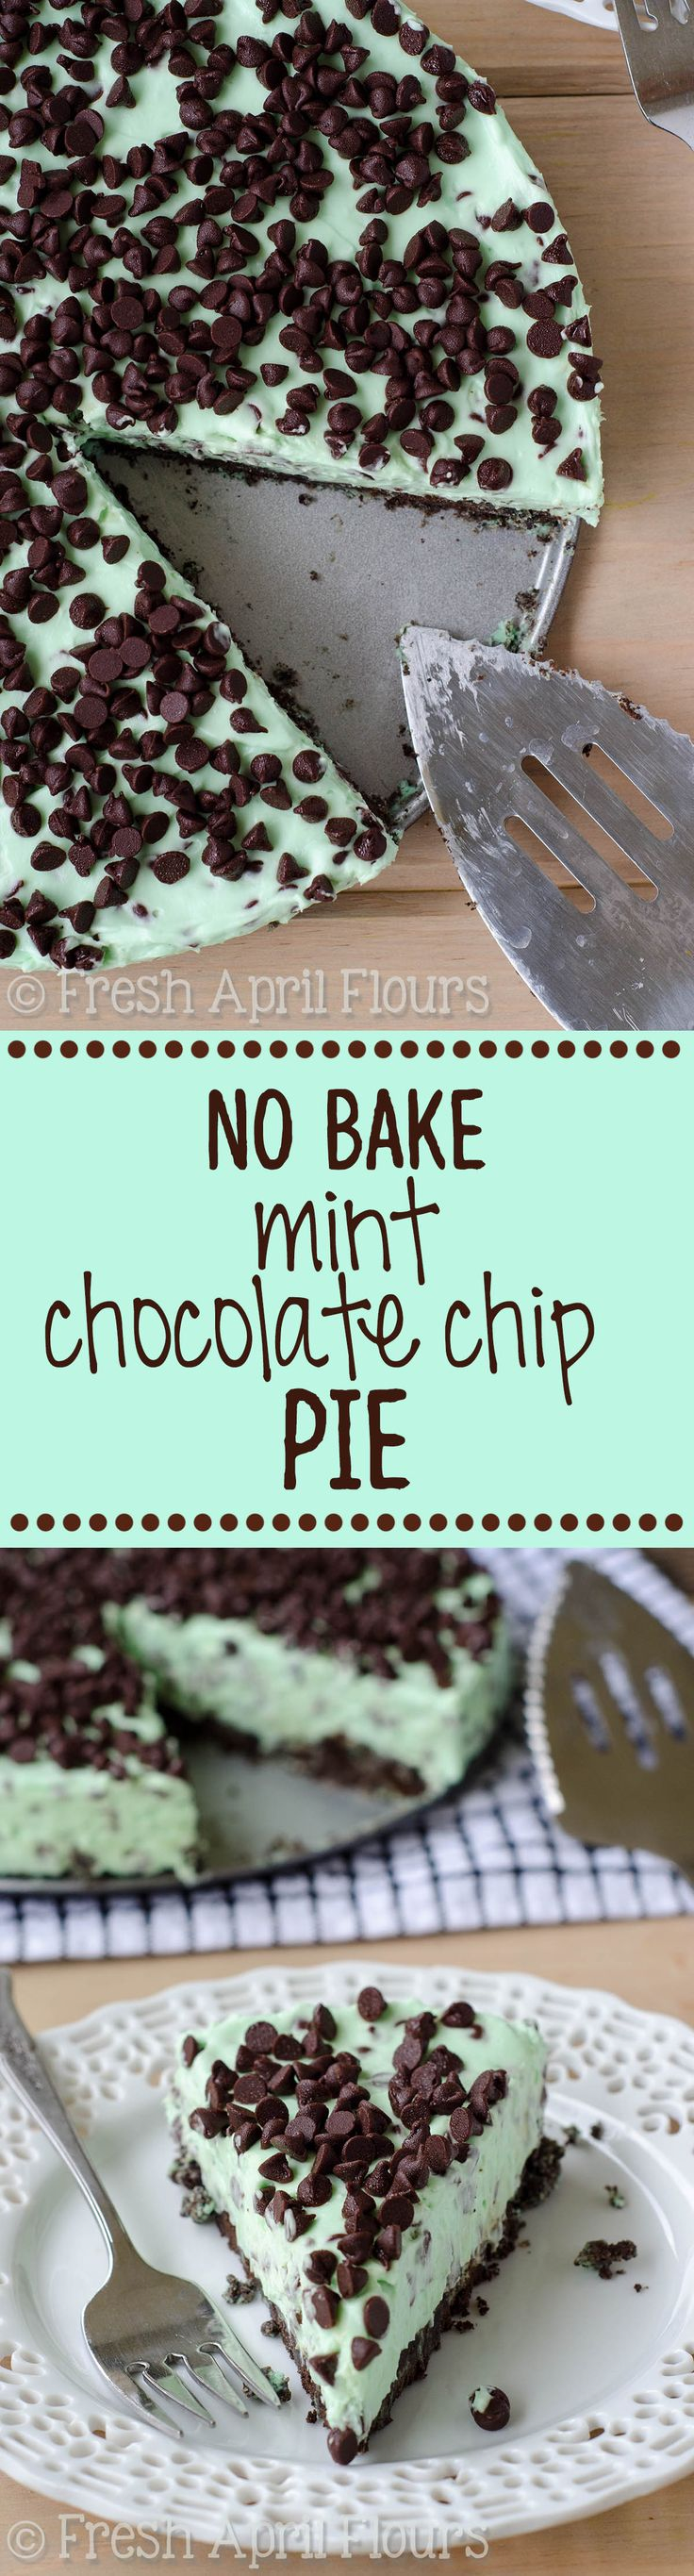 No Bake Mint Chocolate Chip Pie: Creamy, minty filling dotted with mini chocolate chips all on top of a crunchy mint Oreo cookie crust.